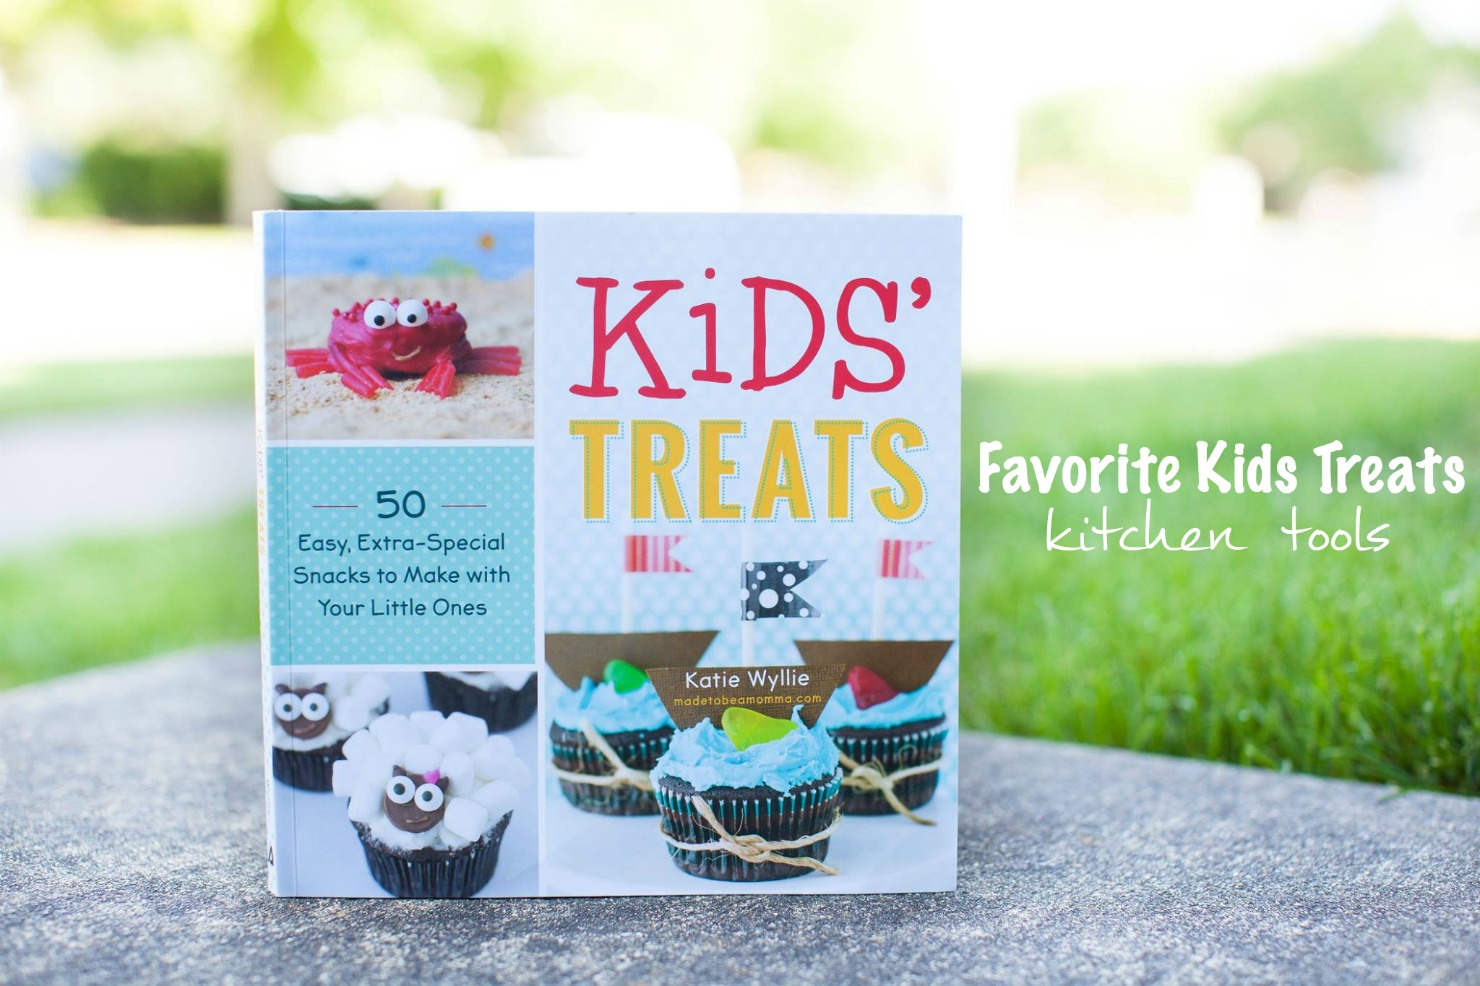 Favorite Kids Treats Kitchen Tools Horizontal